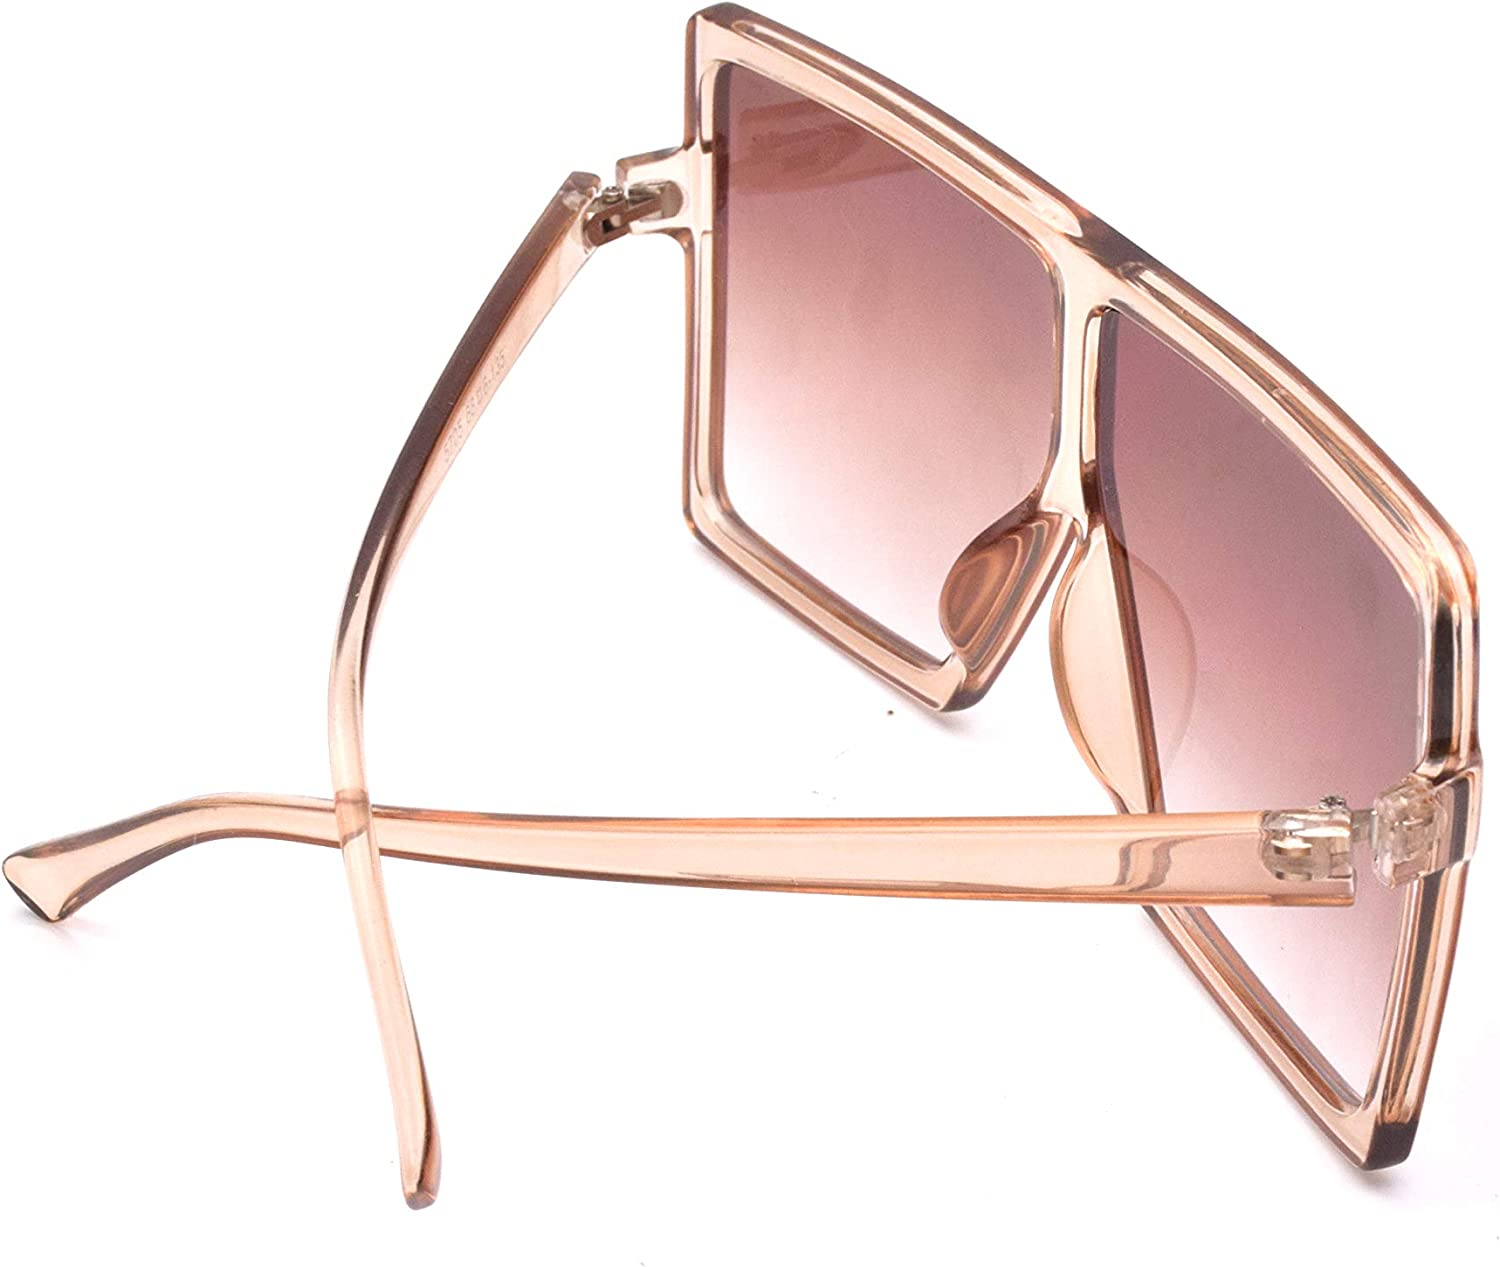 JUSLINK Oversized Square Sunglasses for Women Trendy Flat Top Fashion Shades